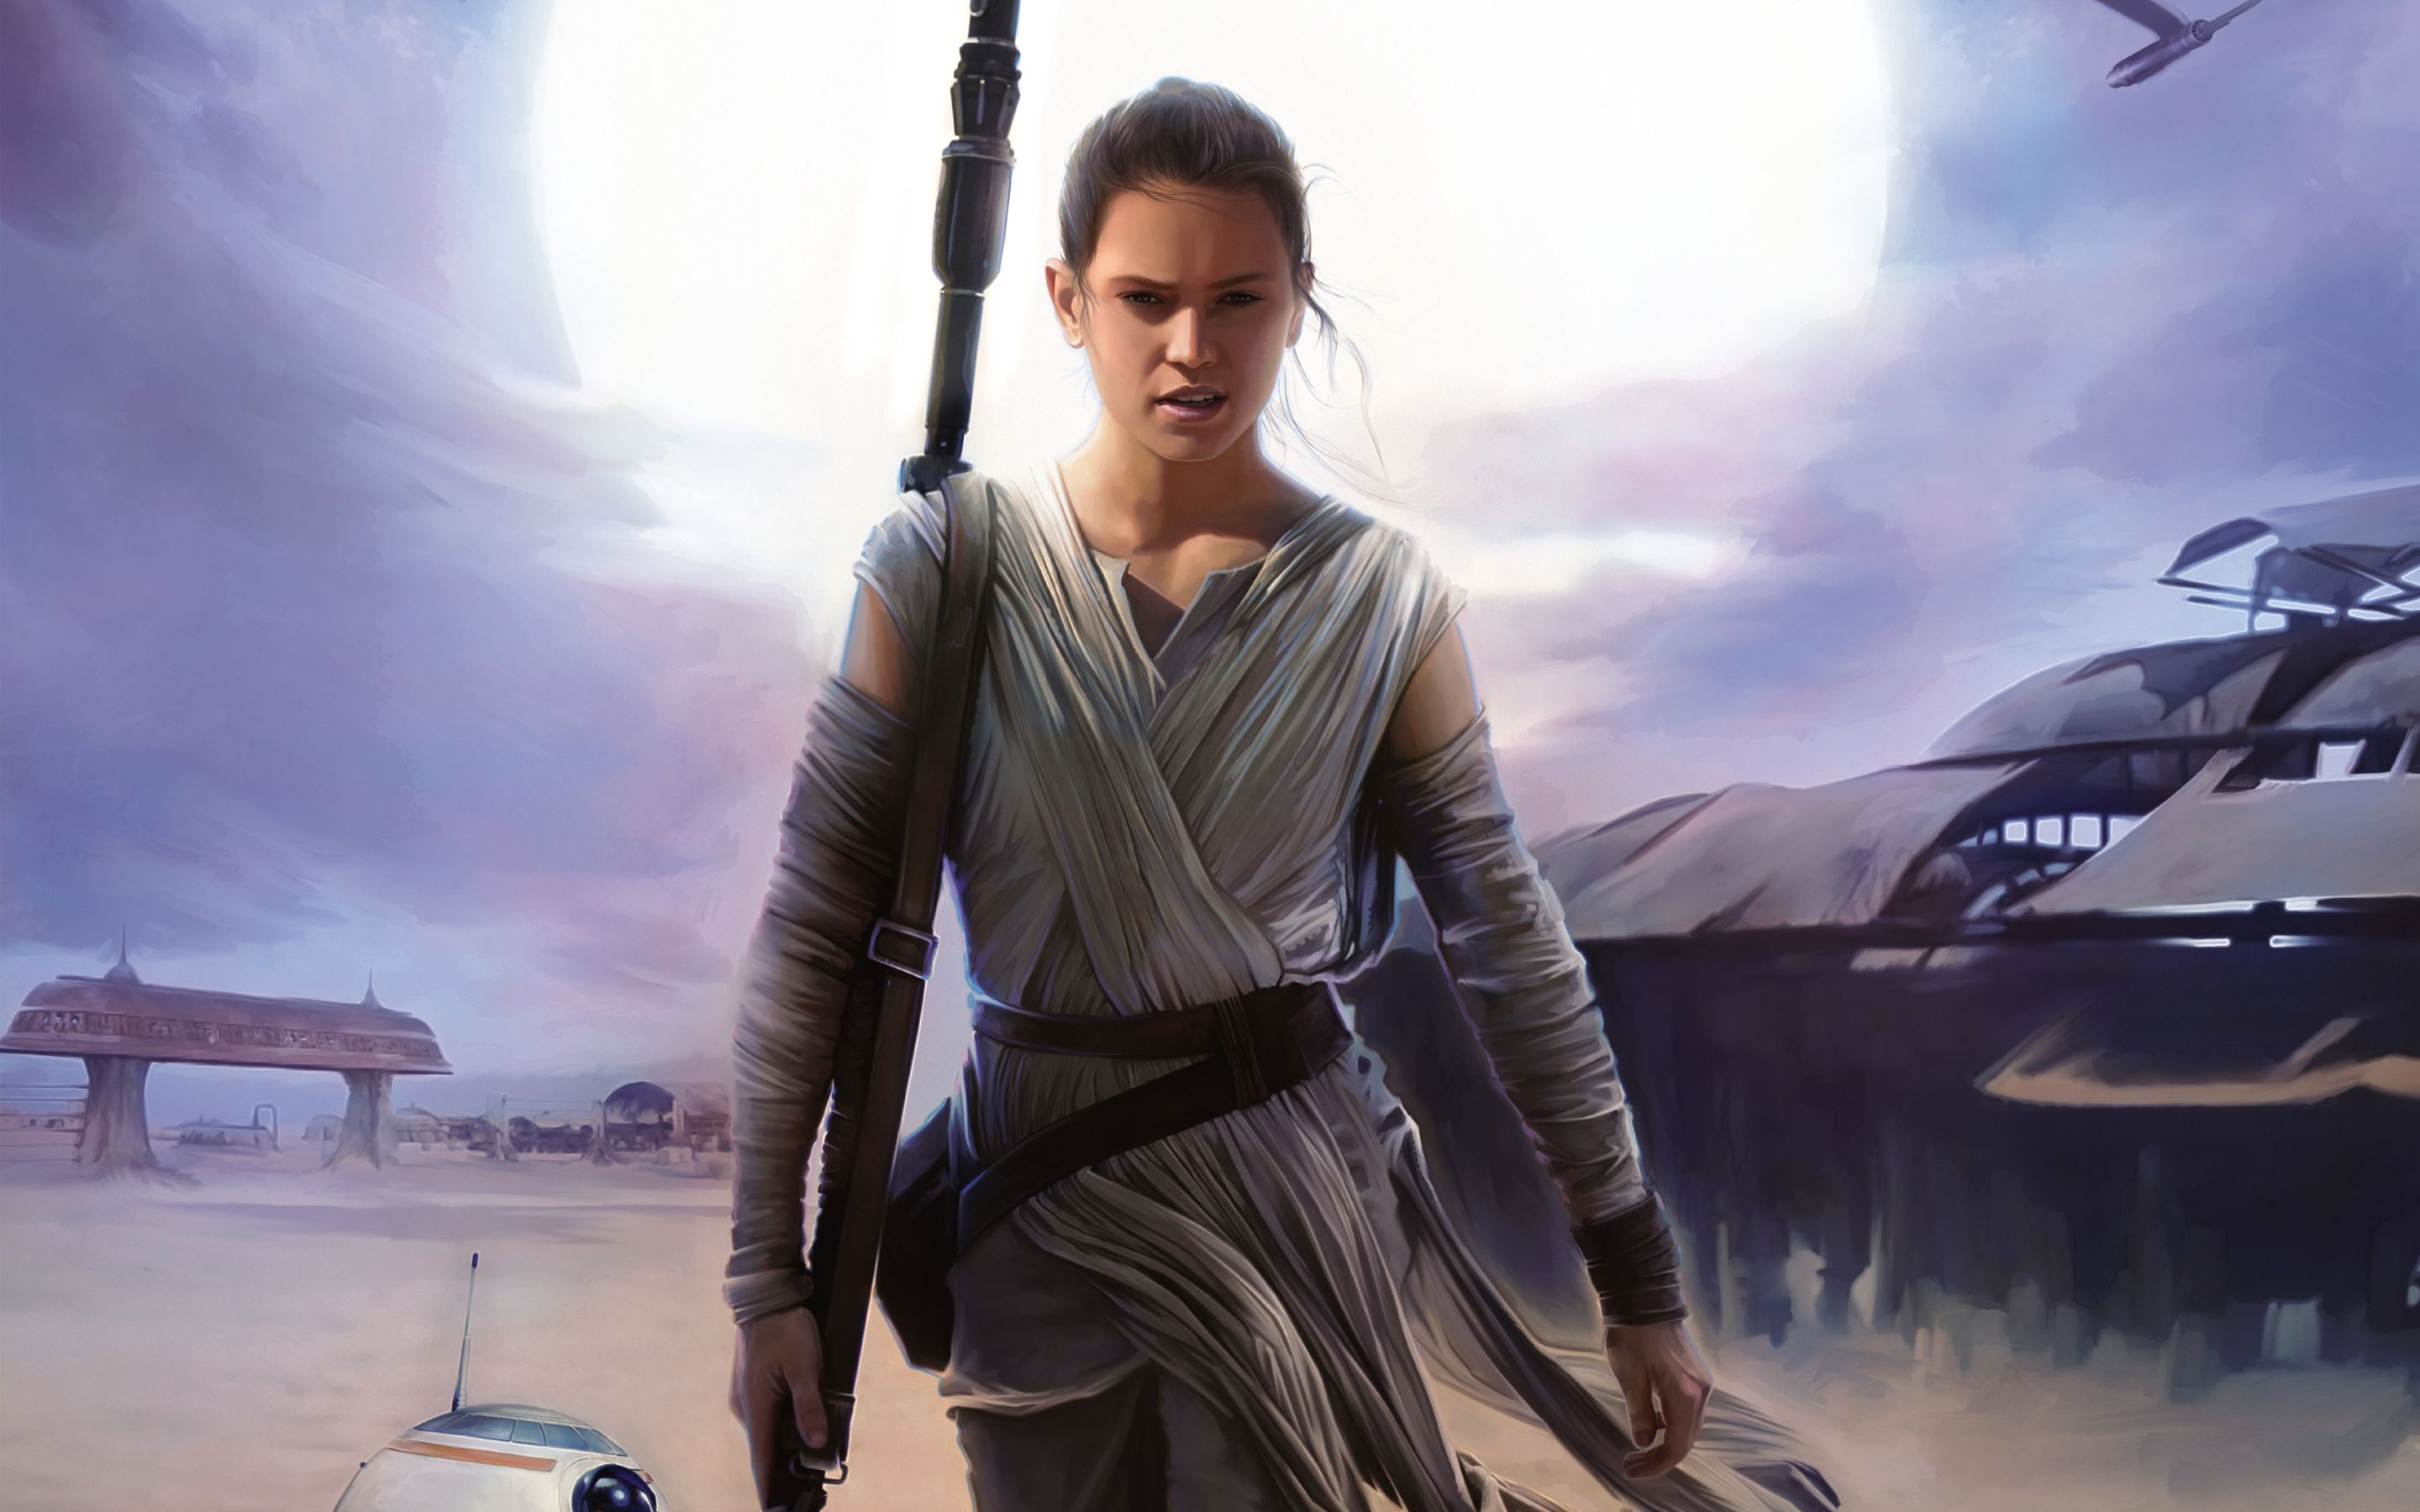 Star Wars Girls Wallpapers Wallpaper Cave